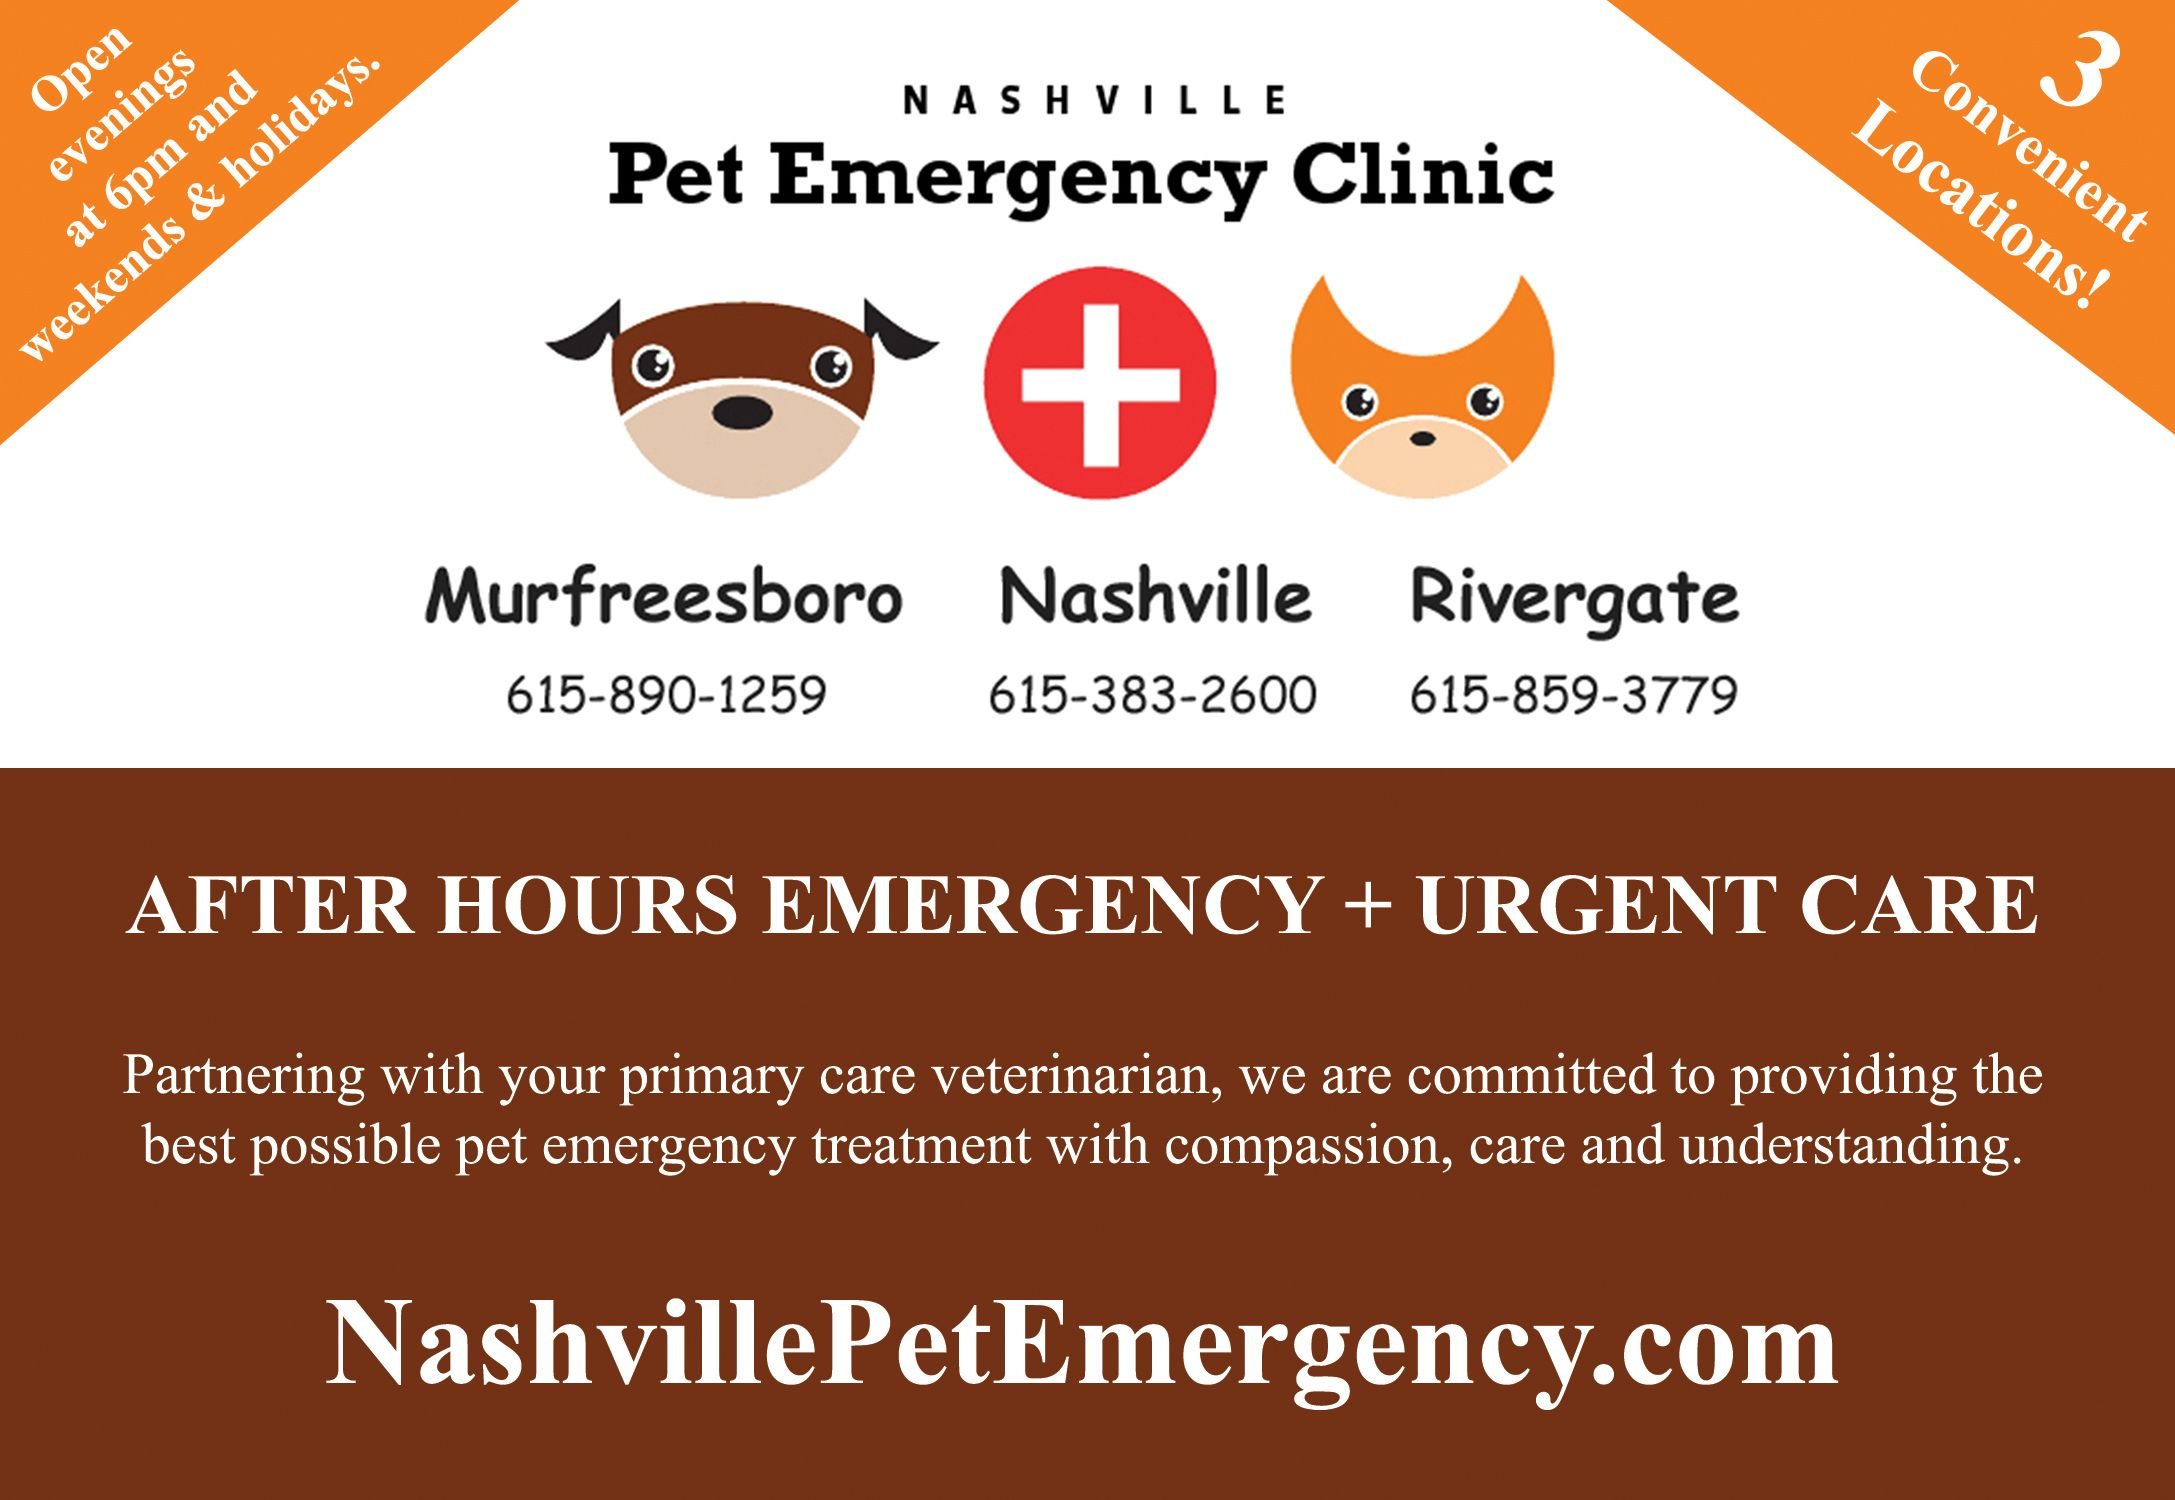 Thanks to Nashville Pet Emergency Clinic for supporting